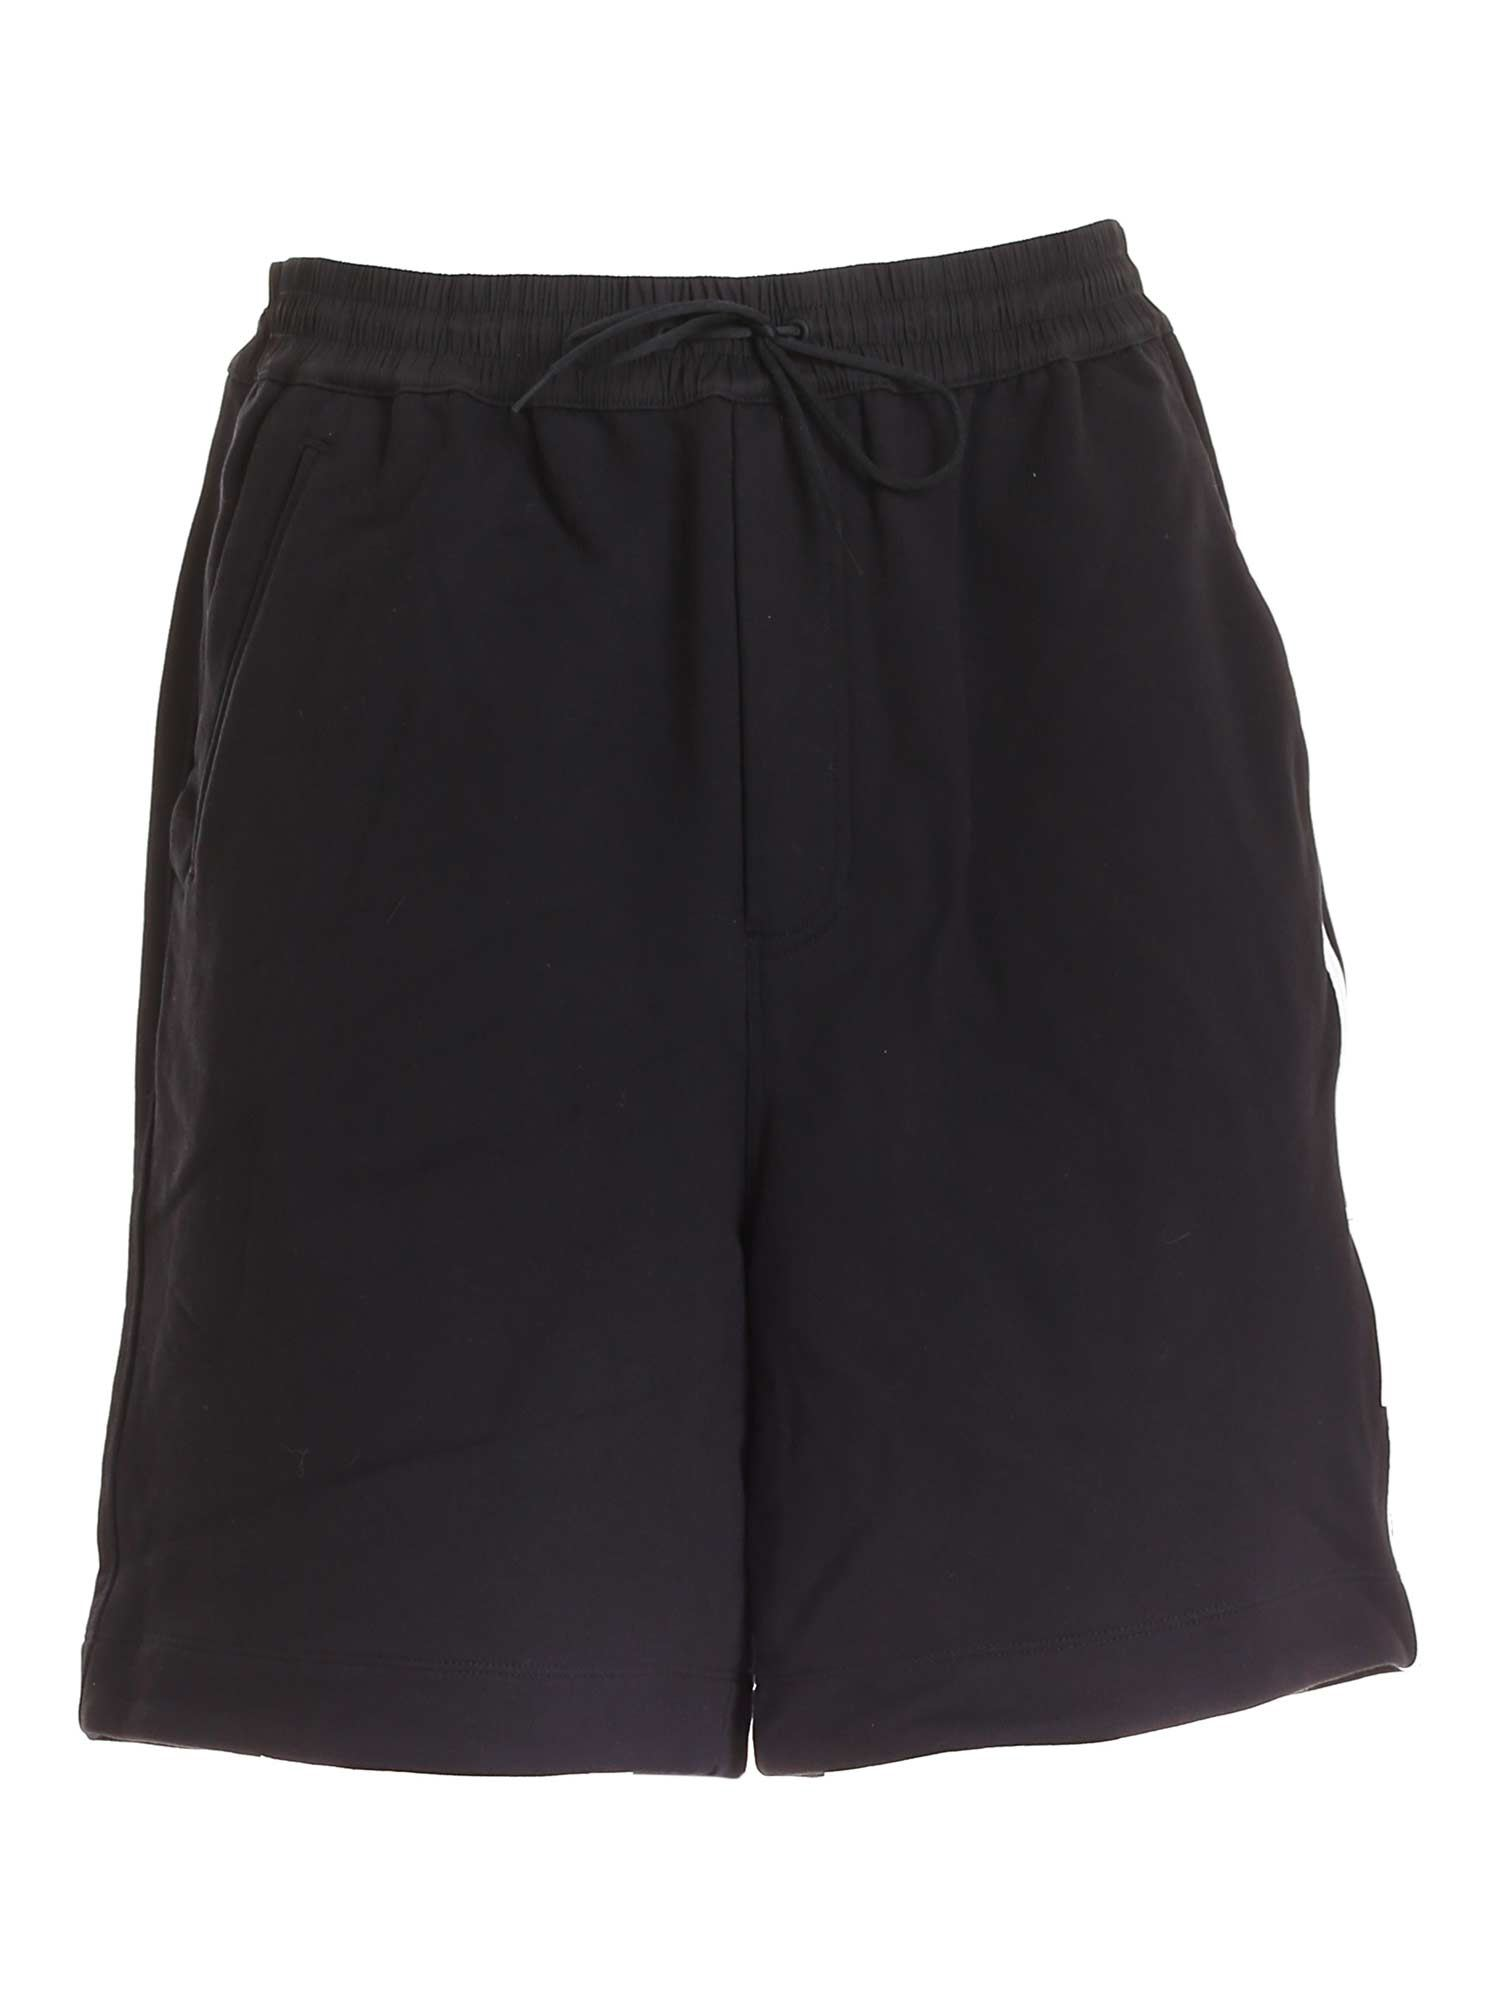 Y-3 LOGO PATCH BERMUDA SHORTS IN BLACK